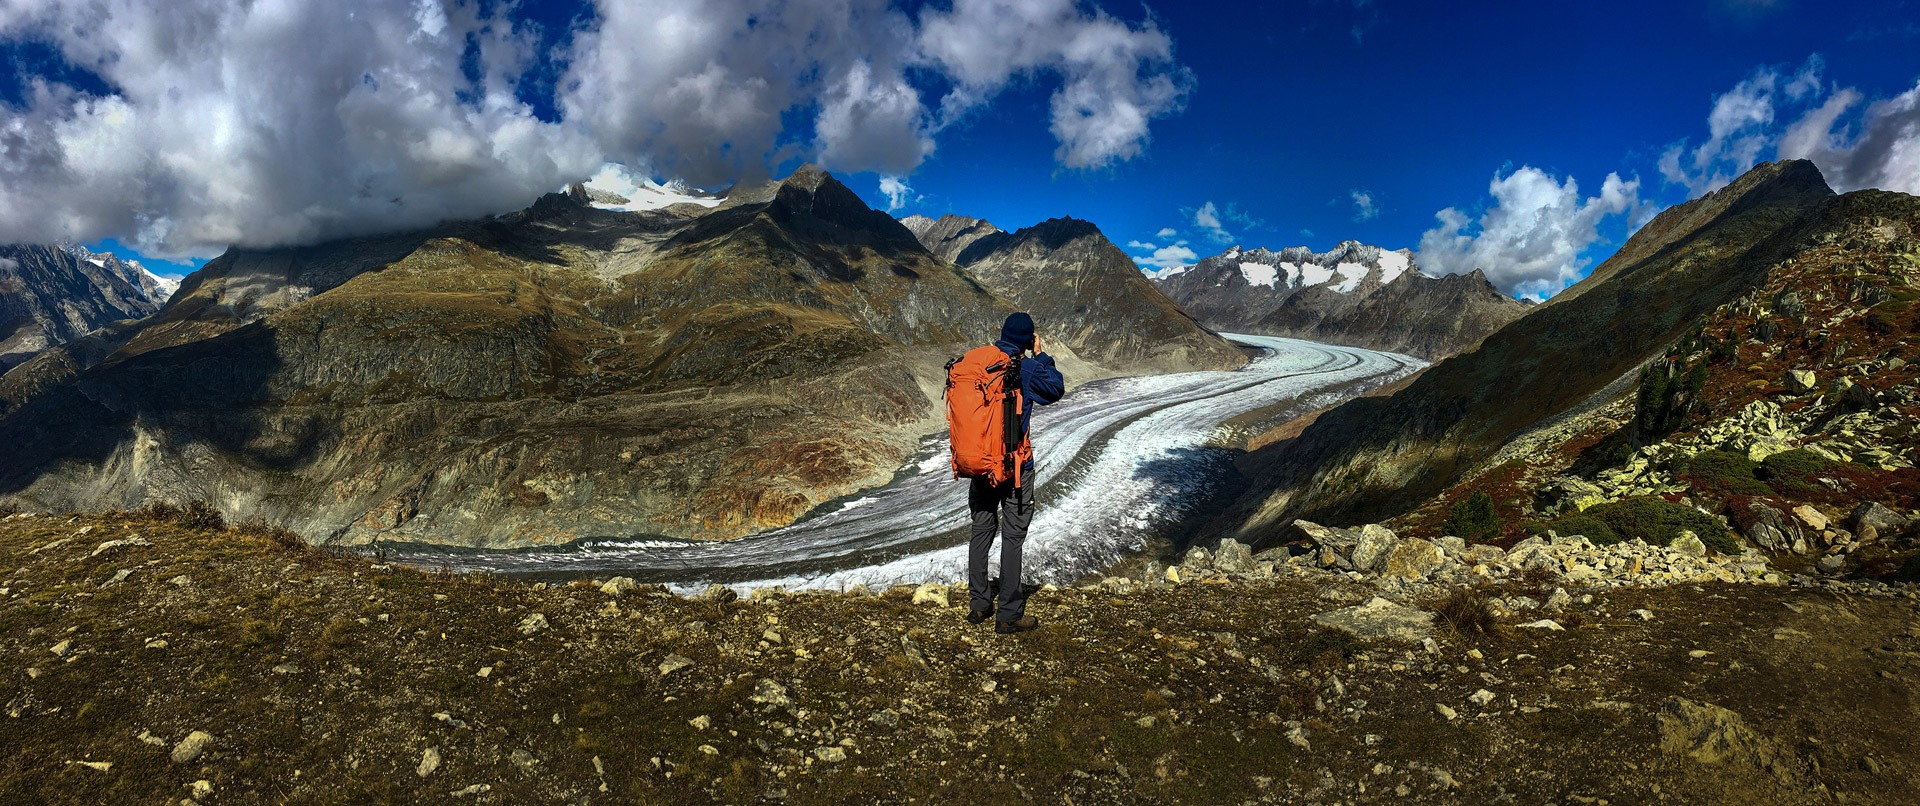 Tomer Razabi photographing at Aletsch glacier in Switzerland